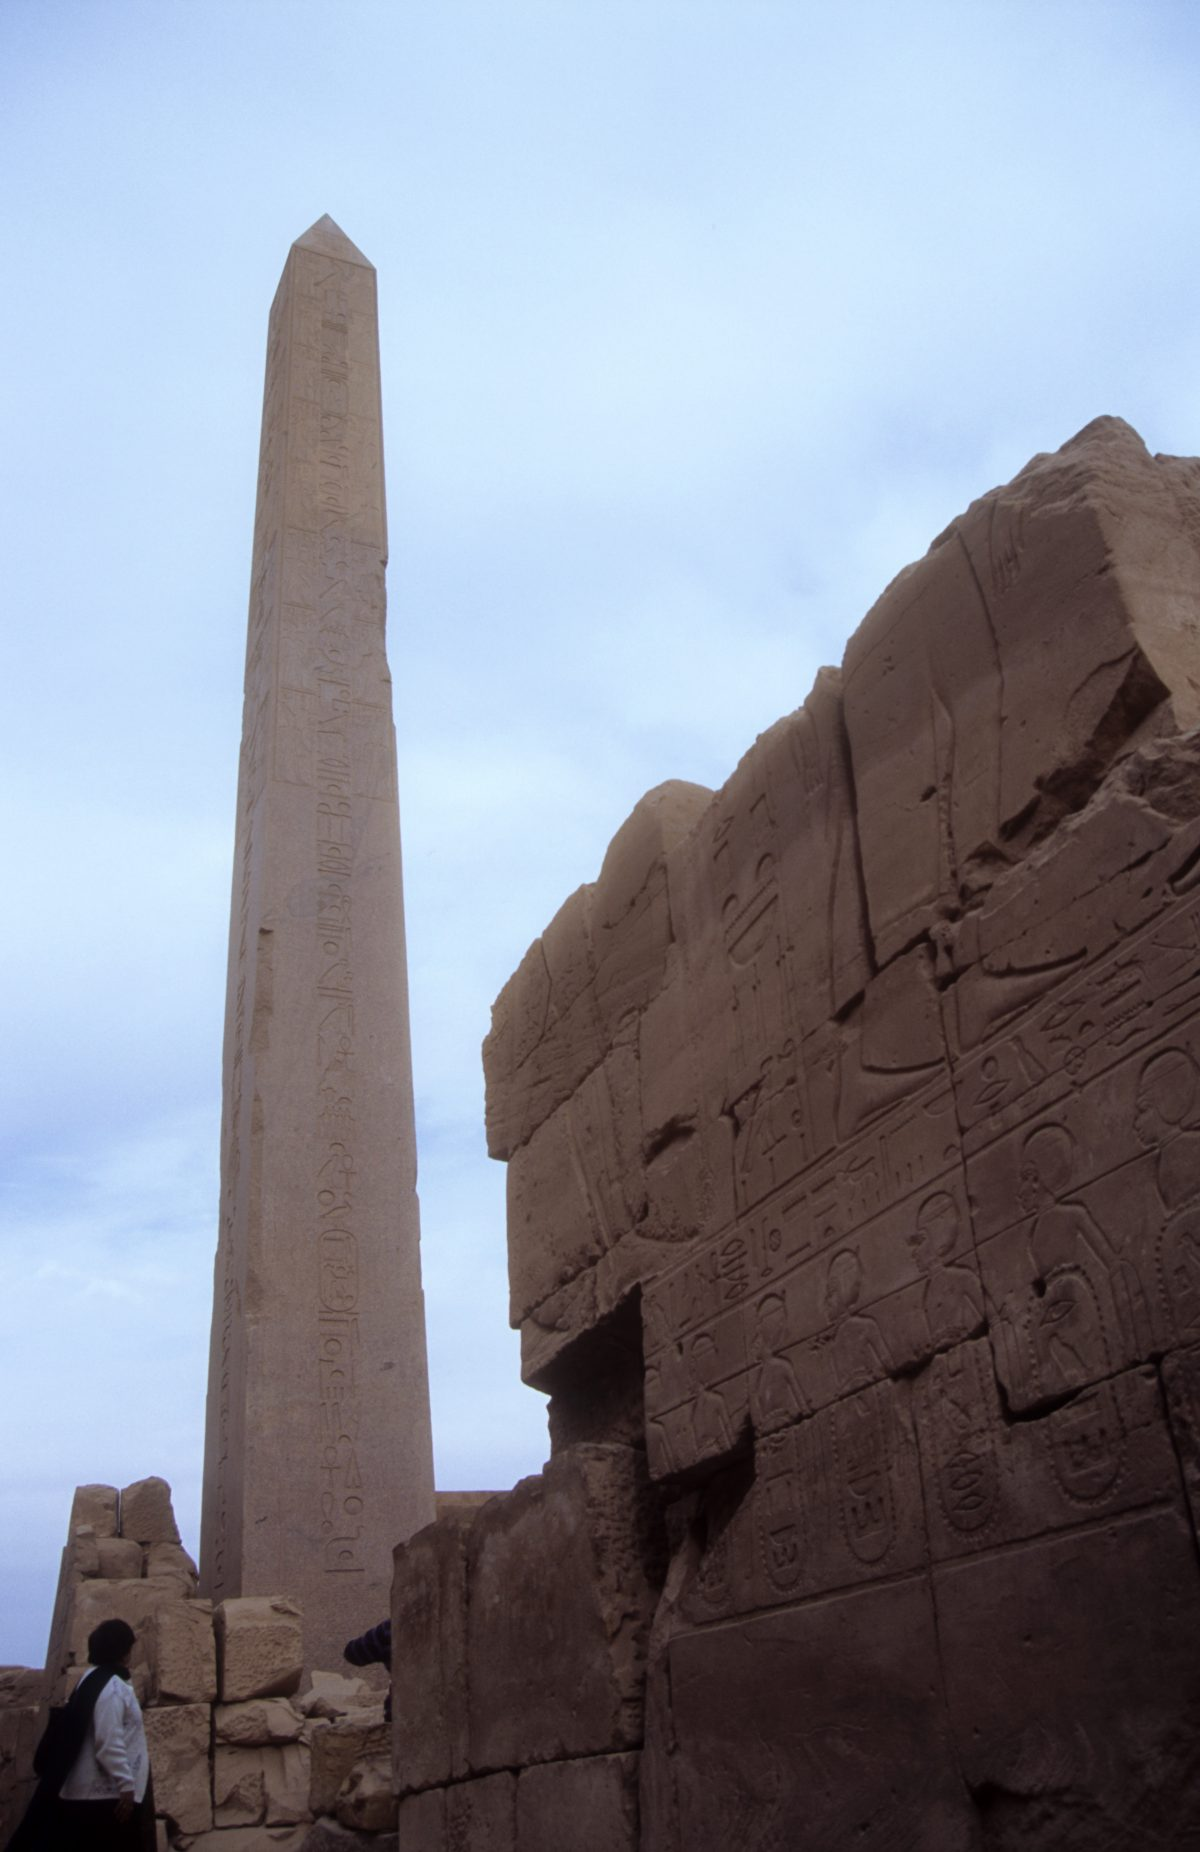 Luxor Temple - A large Egyptian Temple complex., landmark